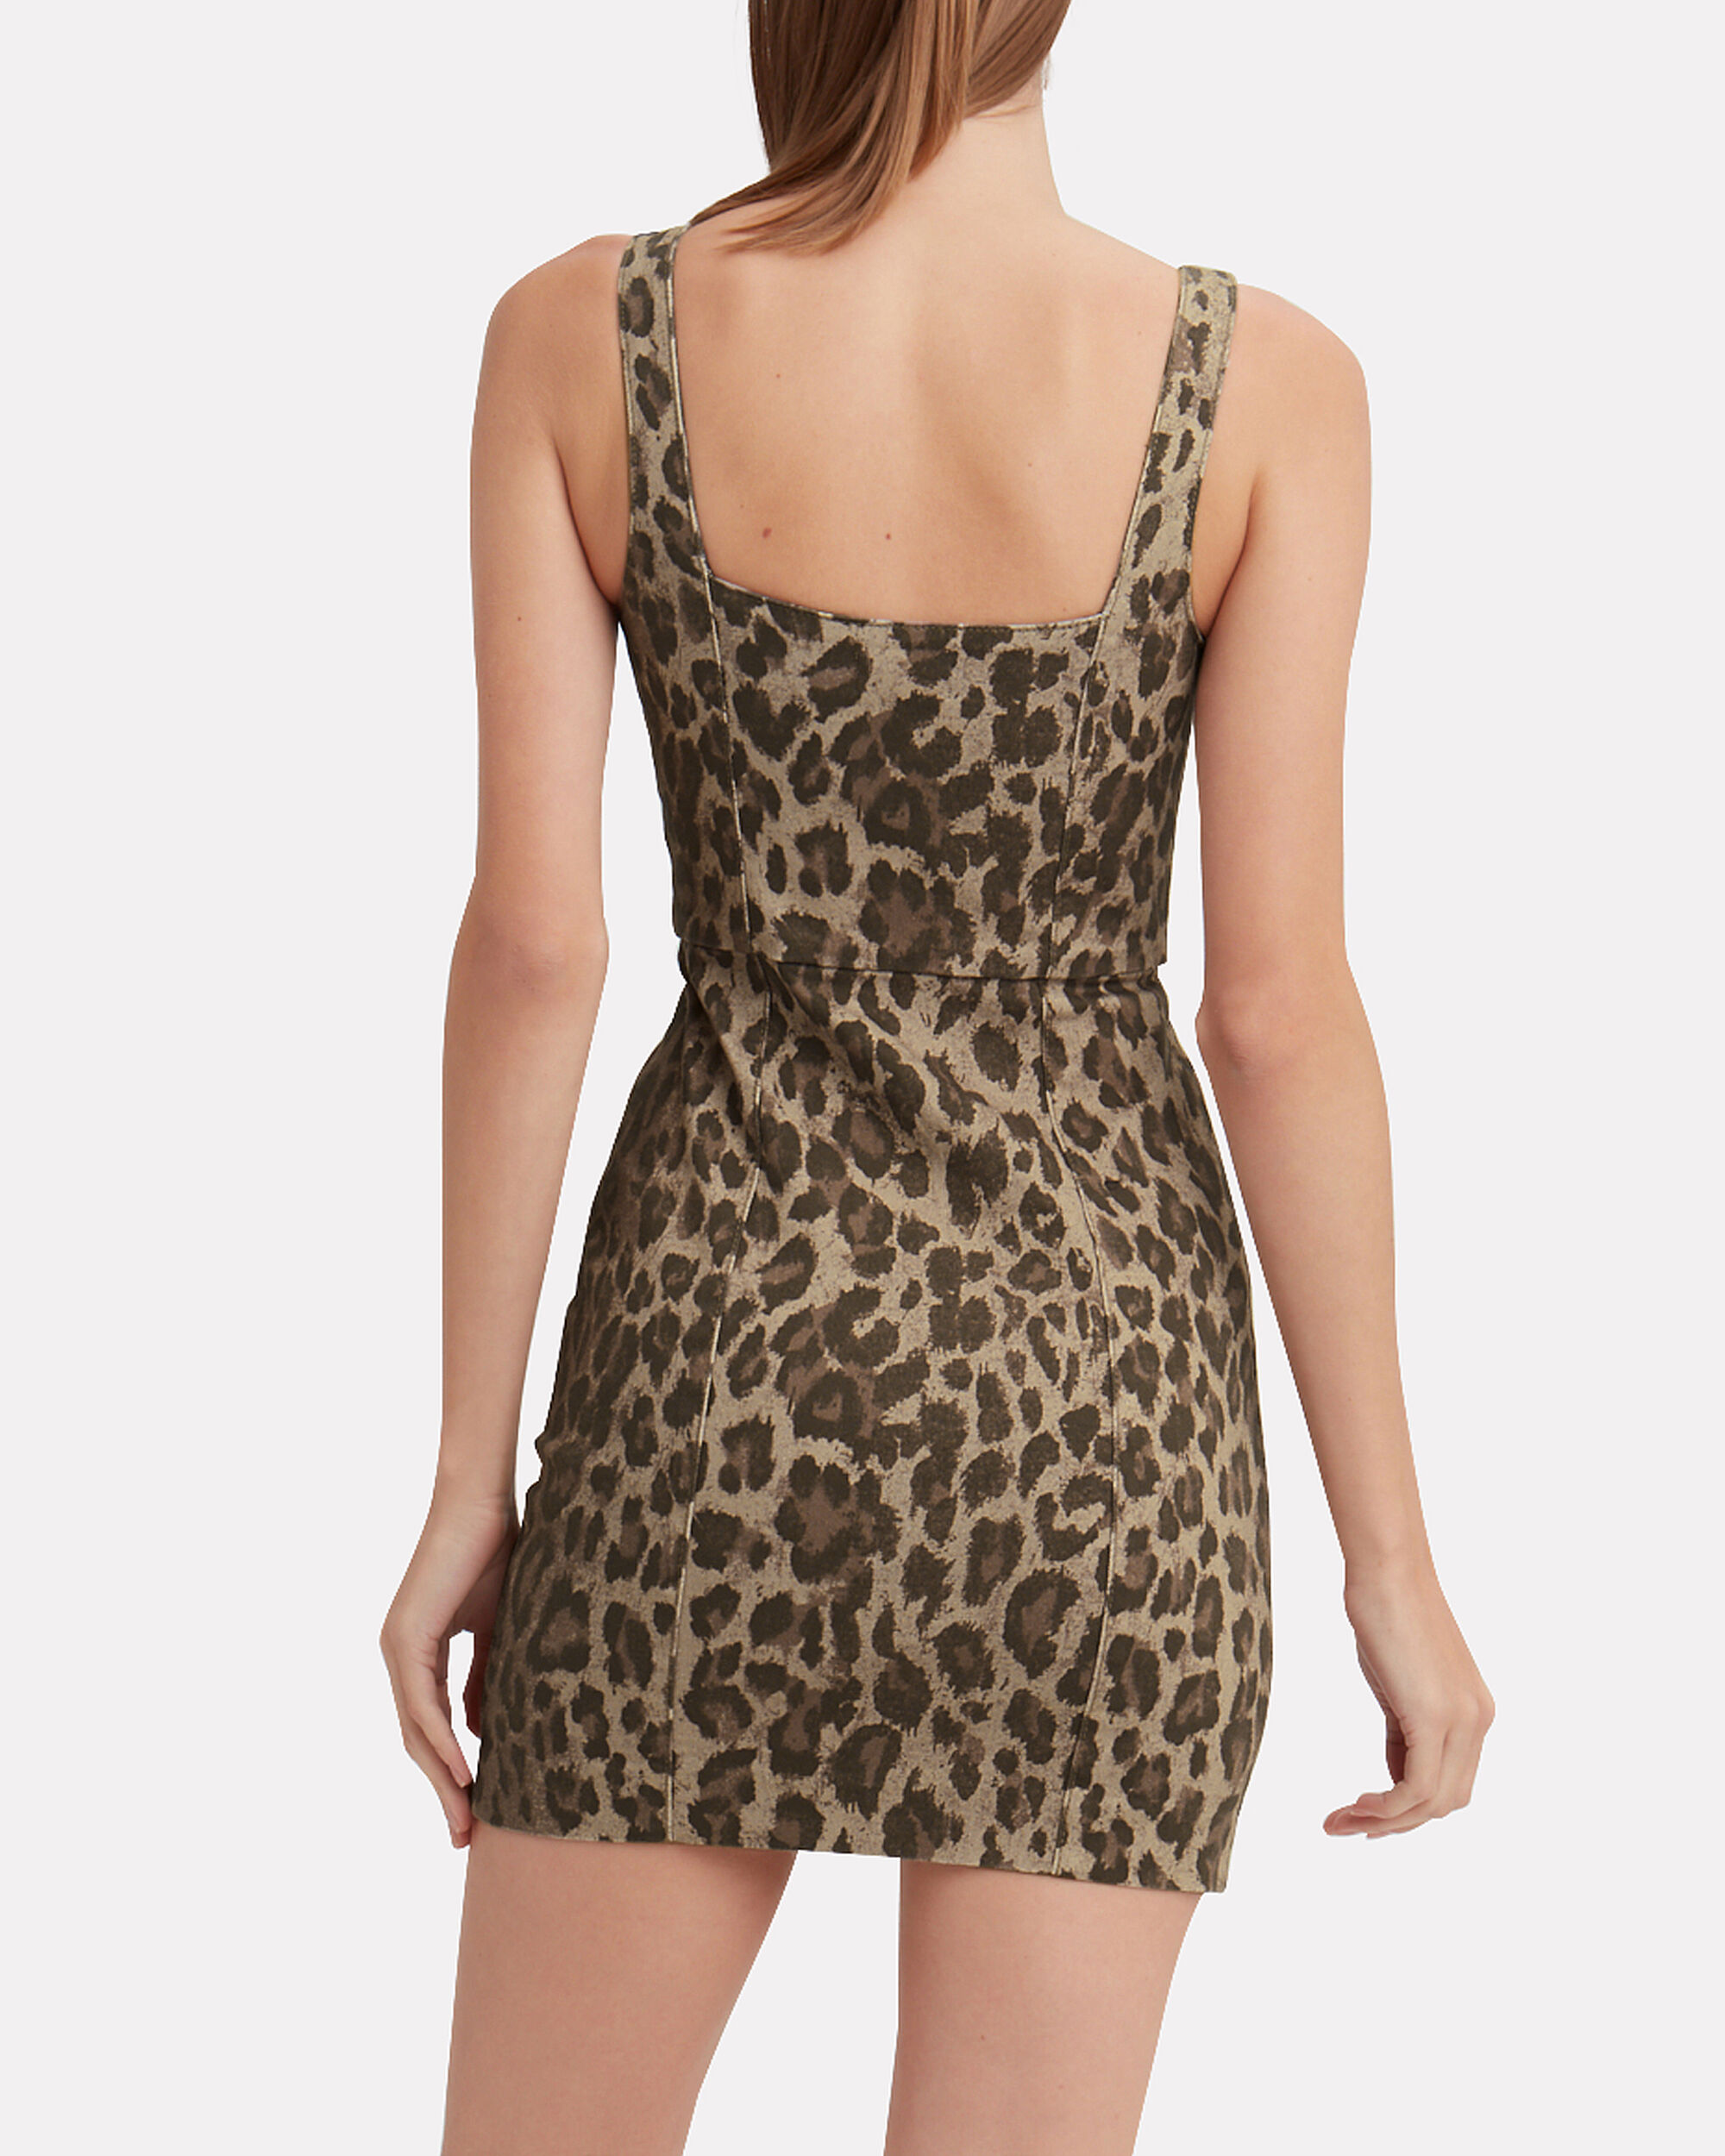 Leopard Mini Dress, LEOPARD, hi-res